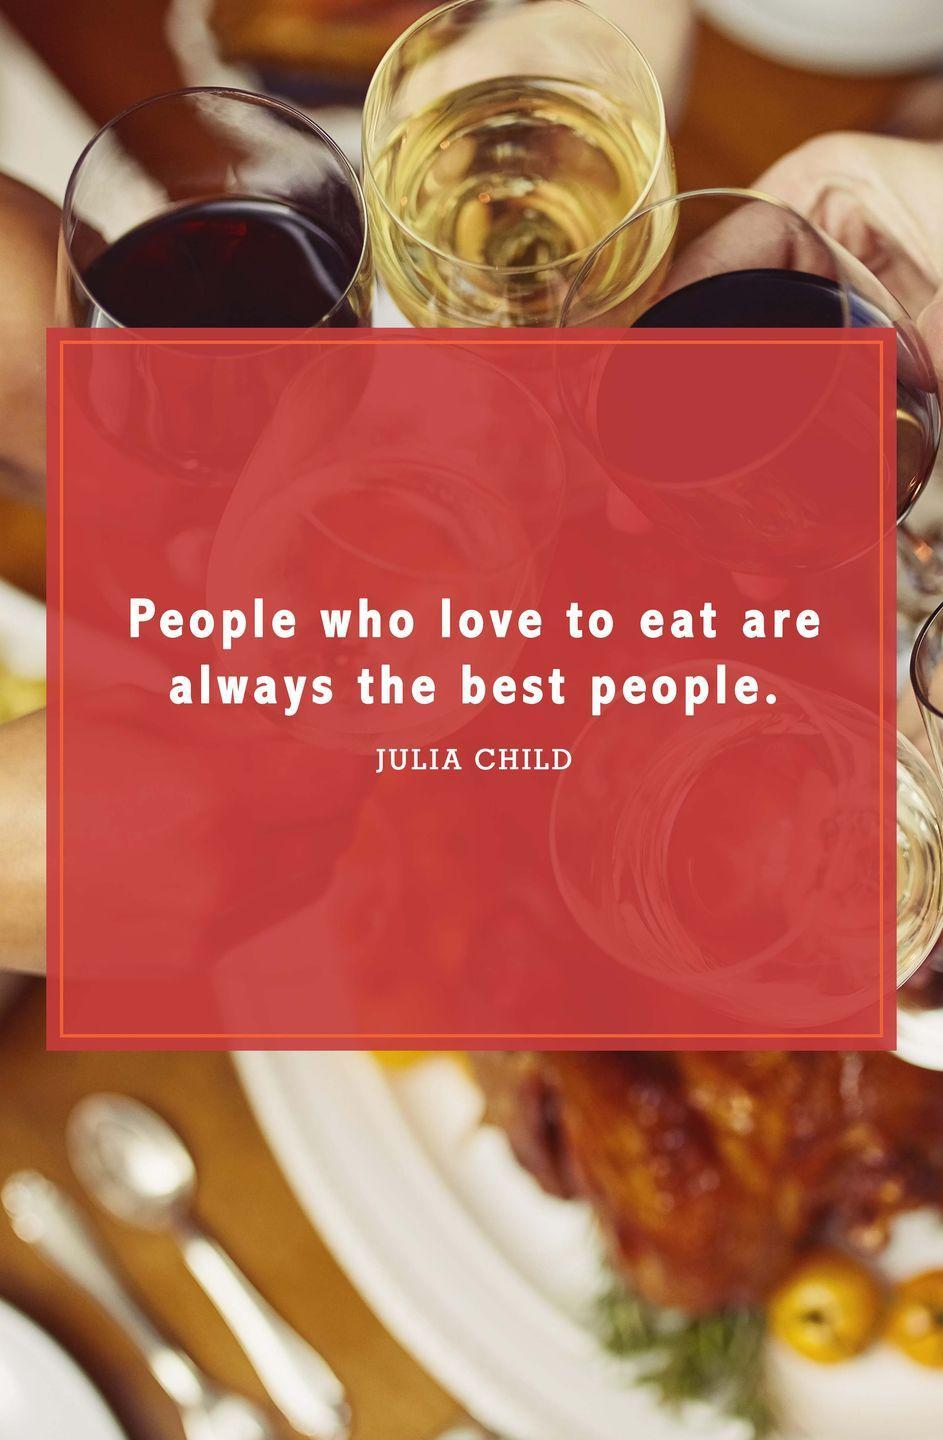 "<p>""People who love to eat are always the best people.""</p>"